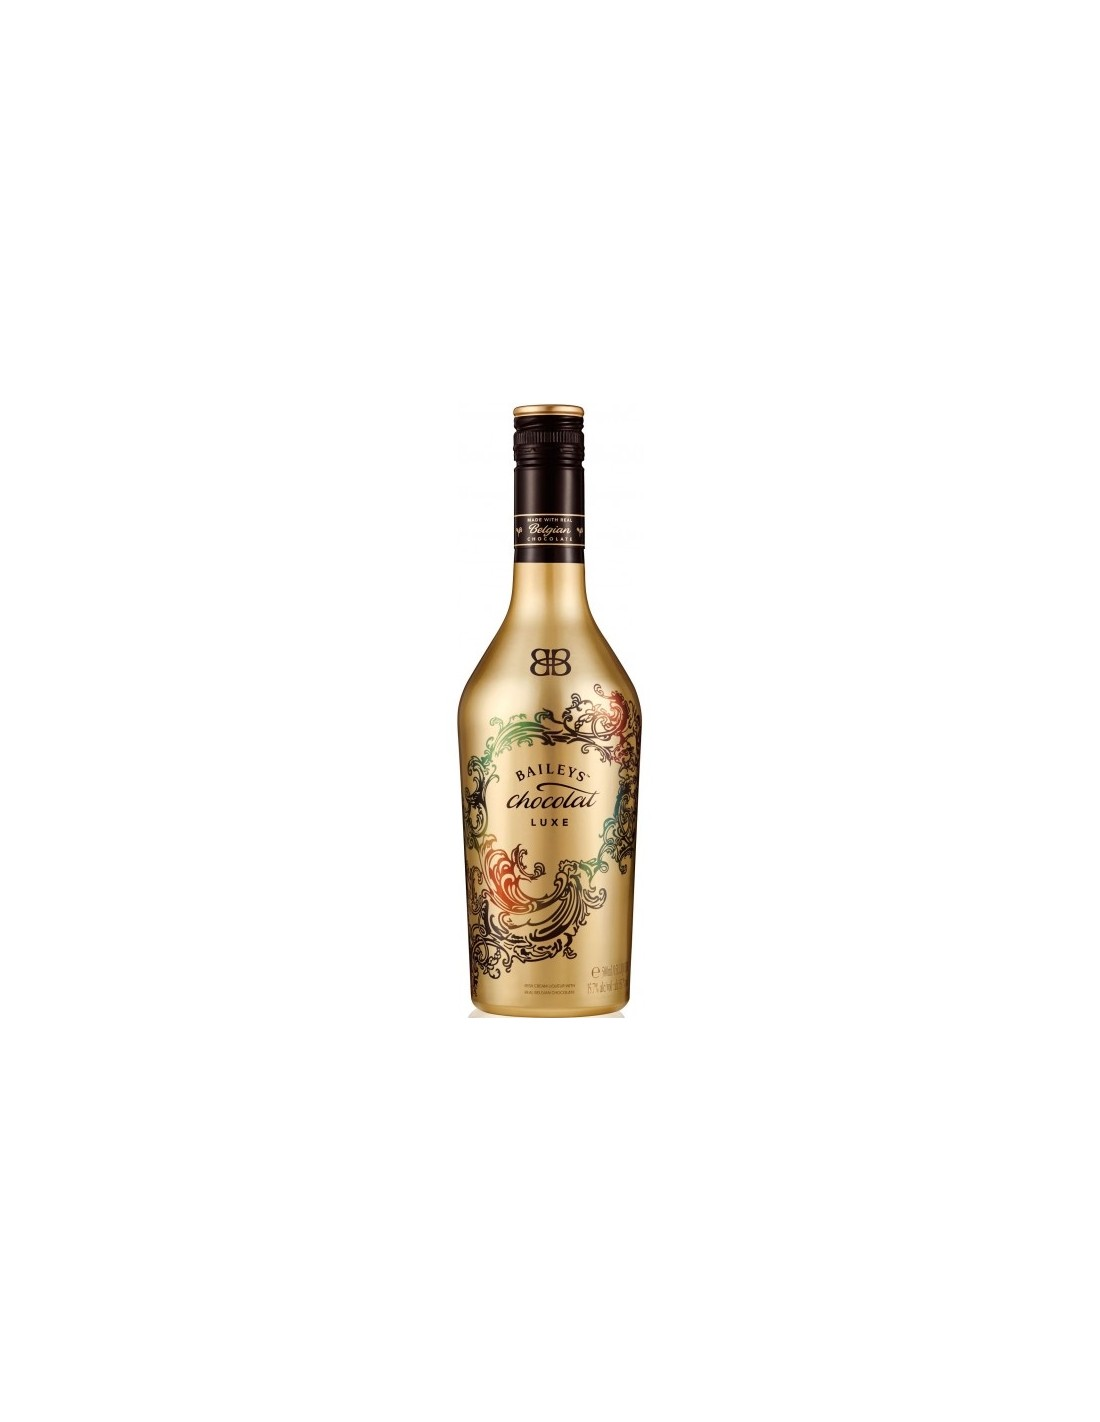 Lichior Bailey's Chocolat Luxe 0.5l Alc. 15.7%